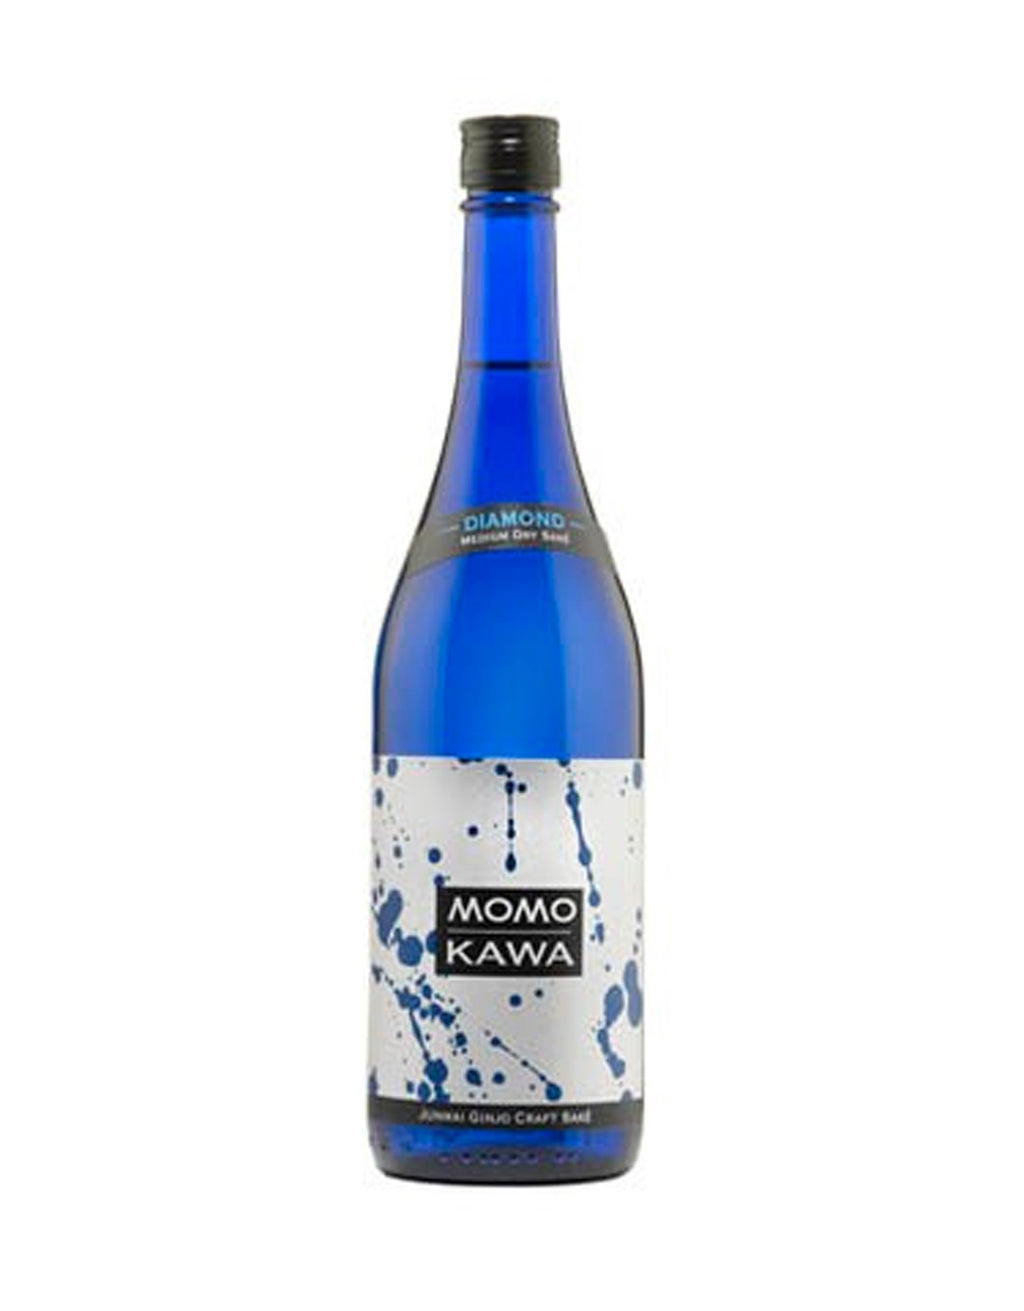 Momokawa 'Diamond' Junmai Ginjo Sake 750ml